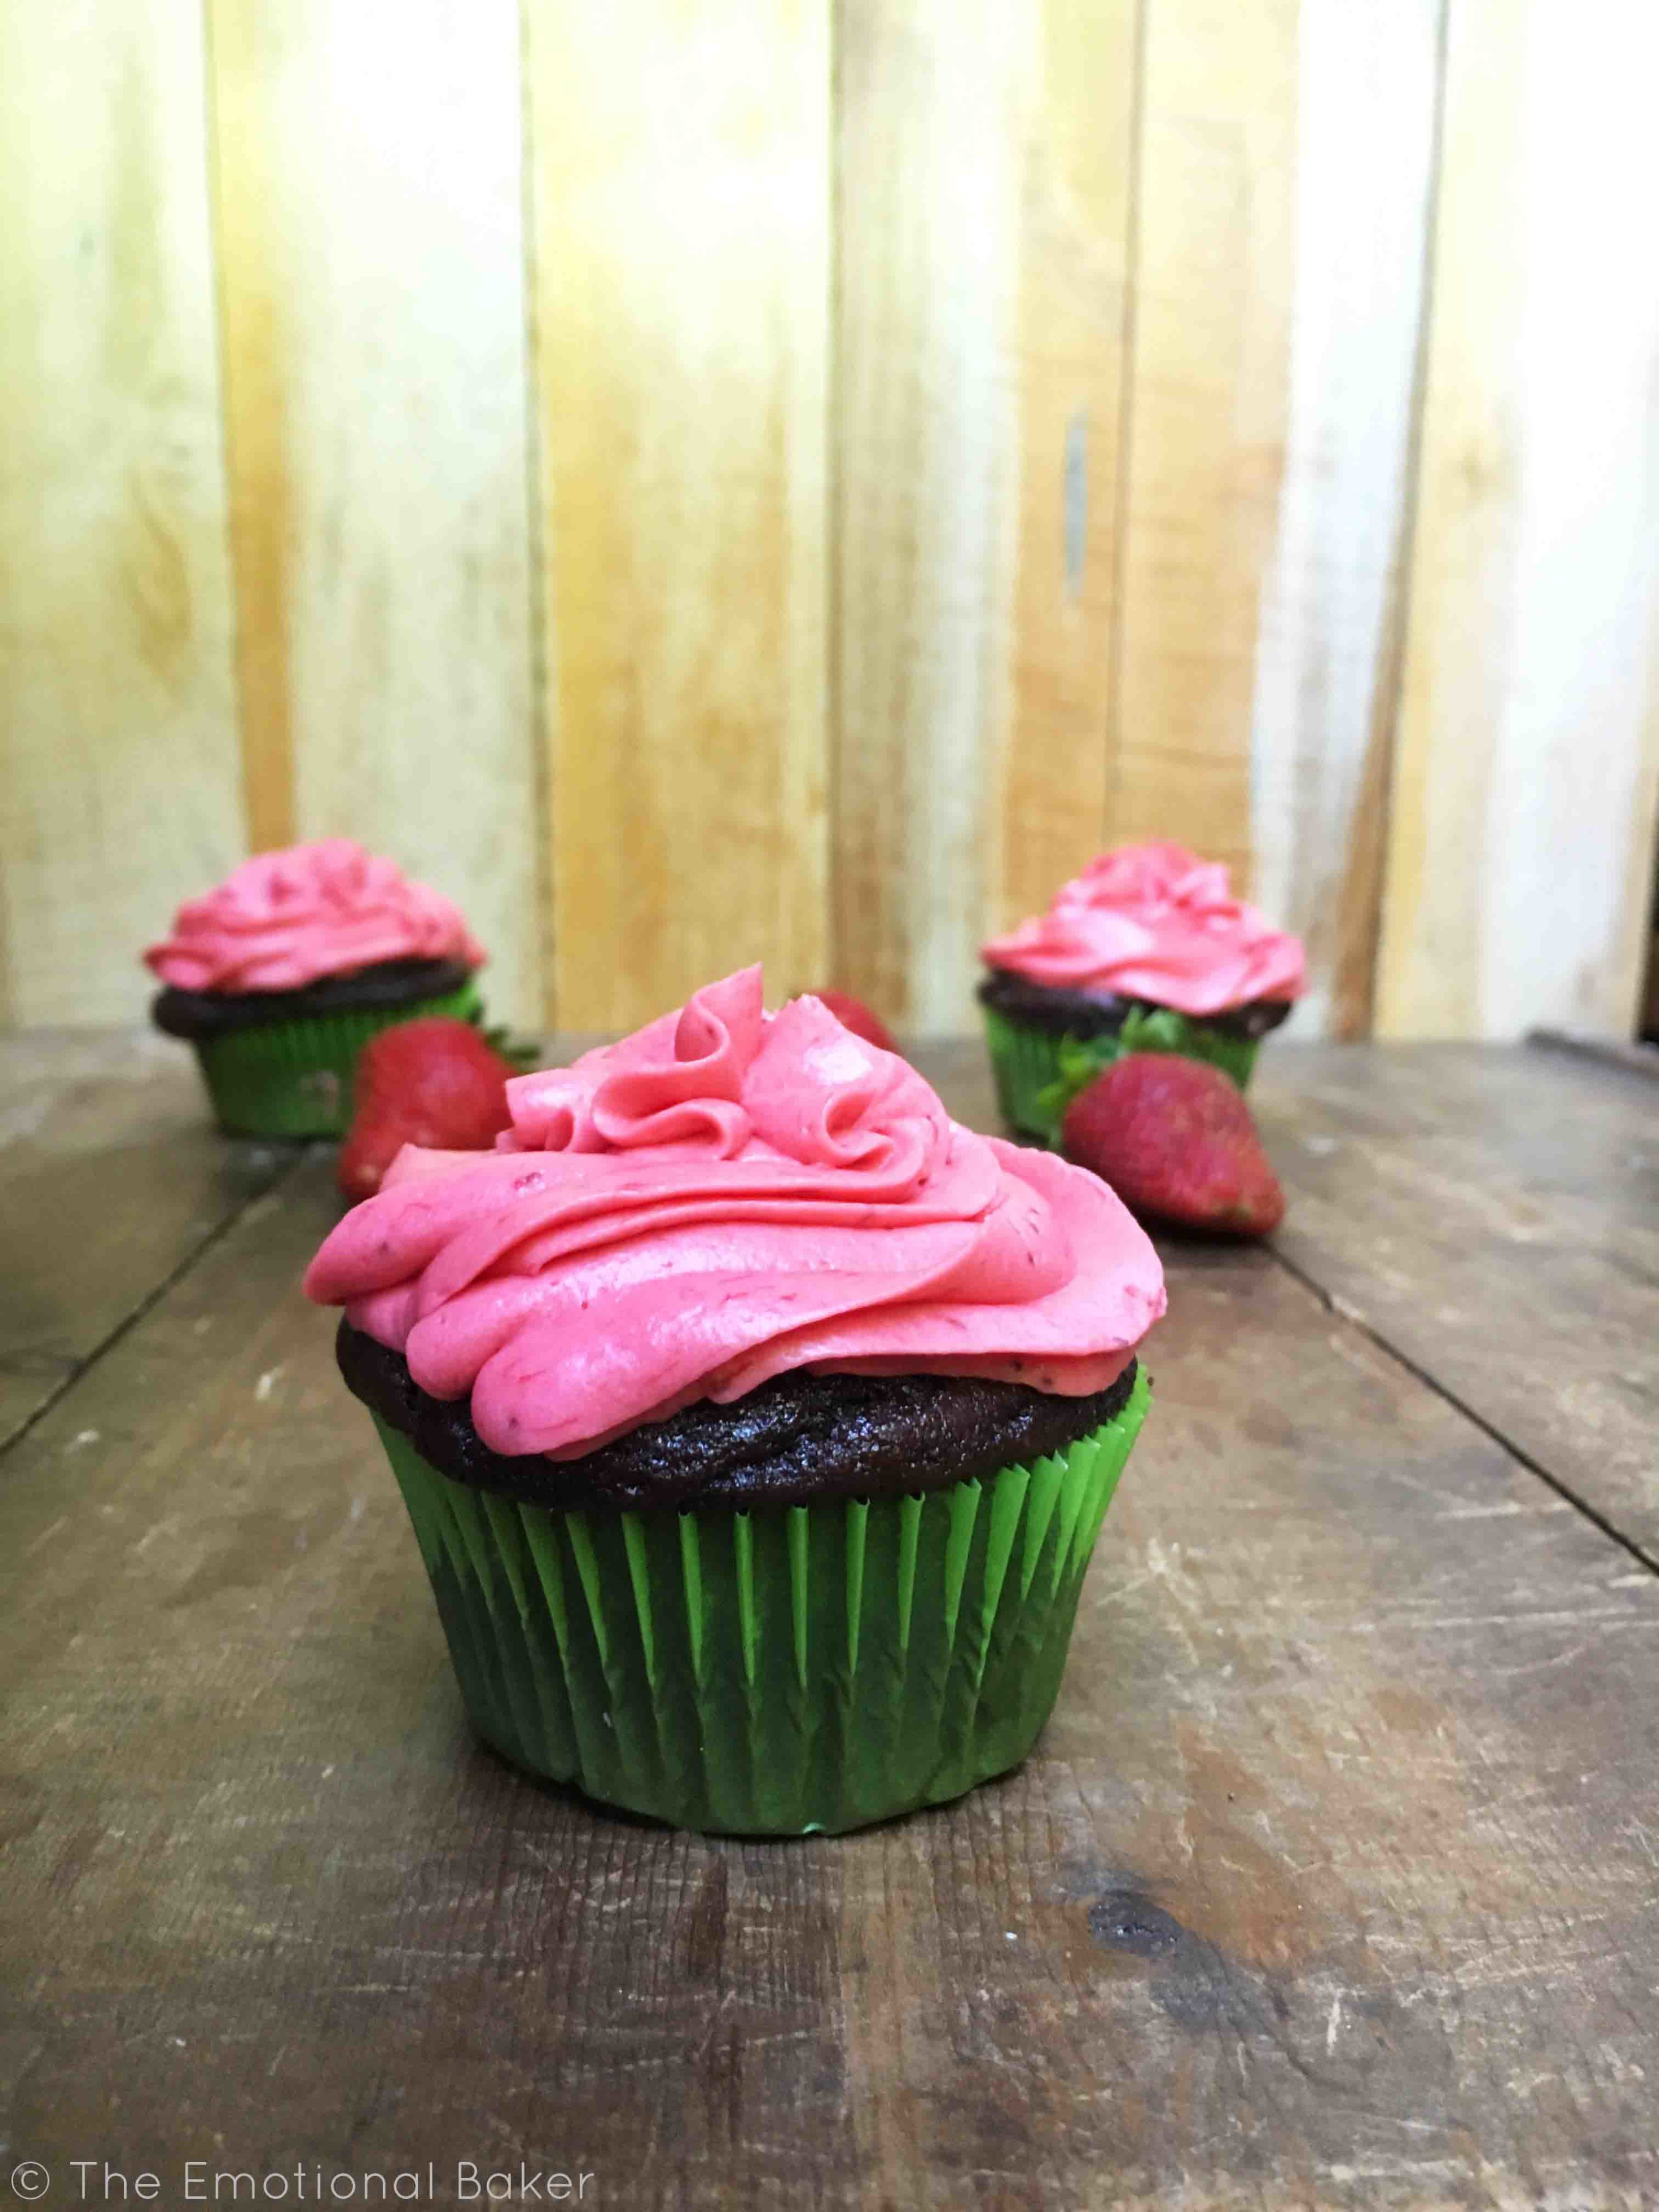 Vegan} Chocolate Cupcakes With Strawberry Buttercream Frosting | The ...